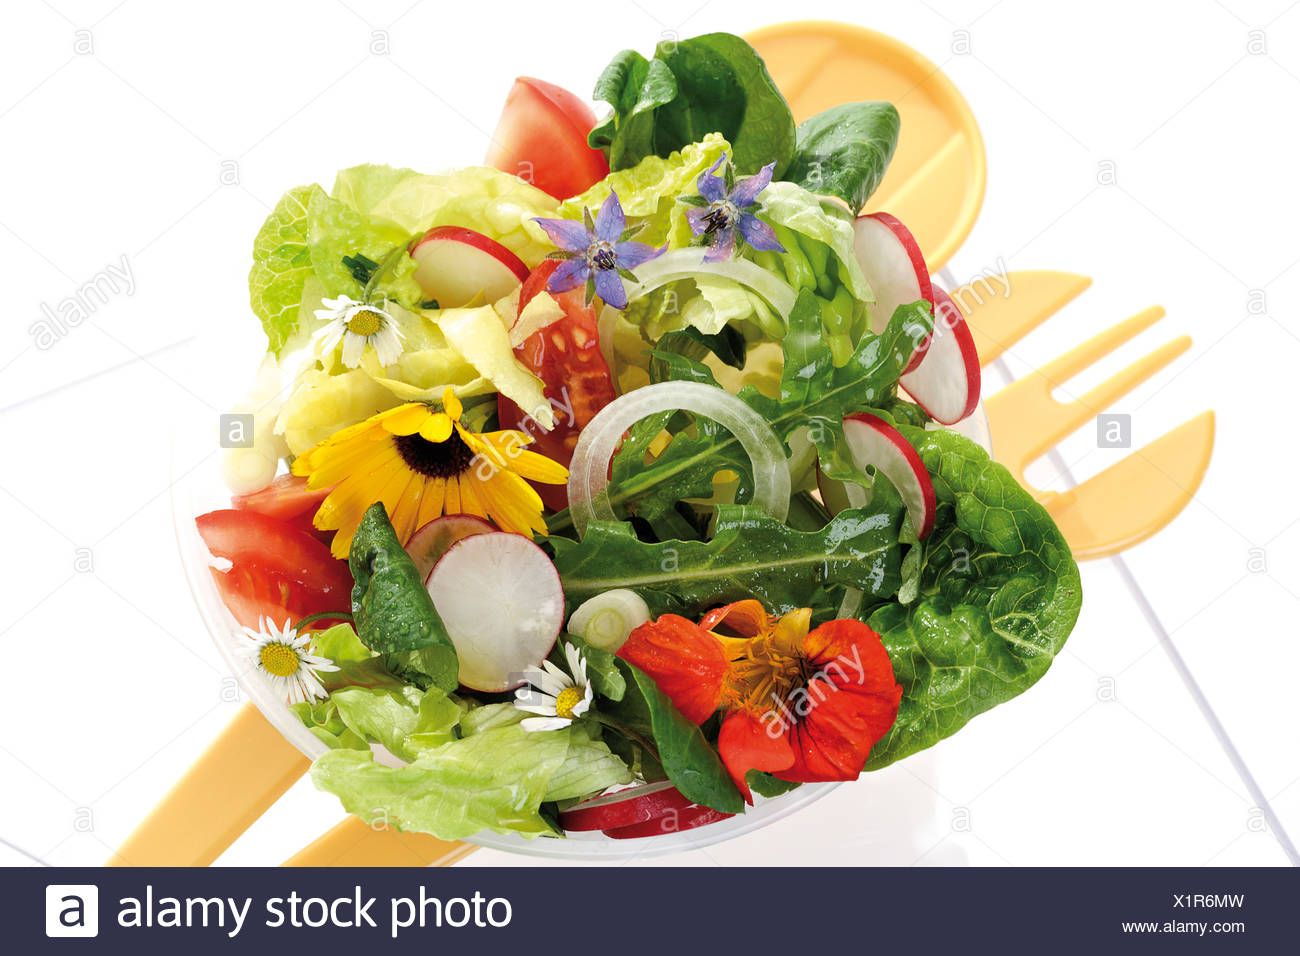 Mixed salad with edible flowers, elevated view - Stock Image